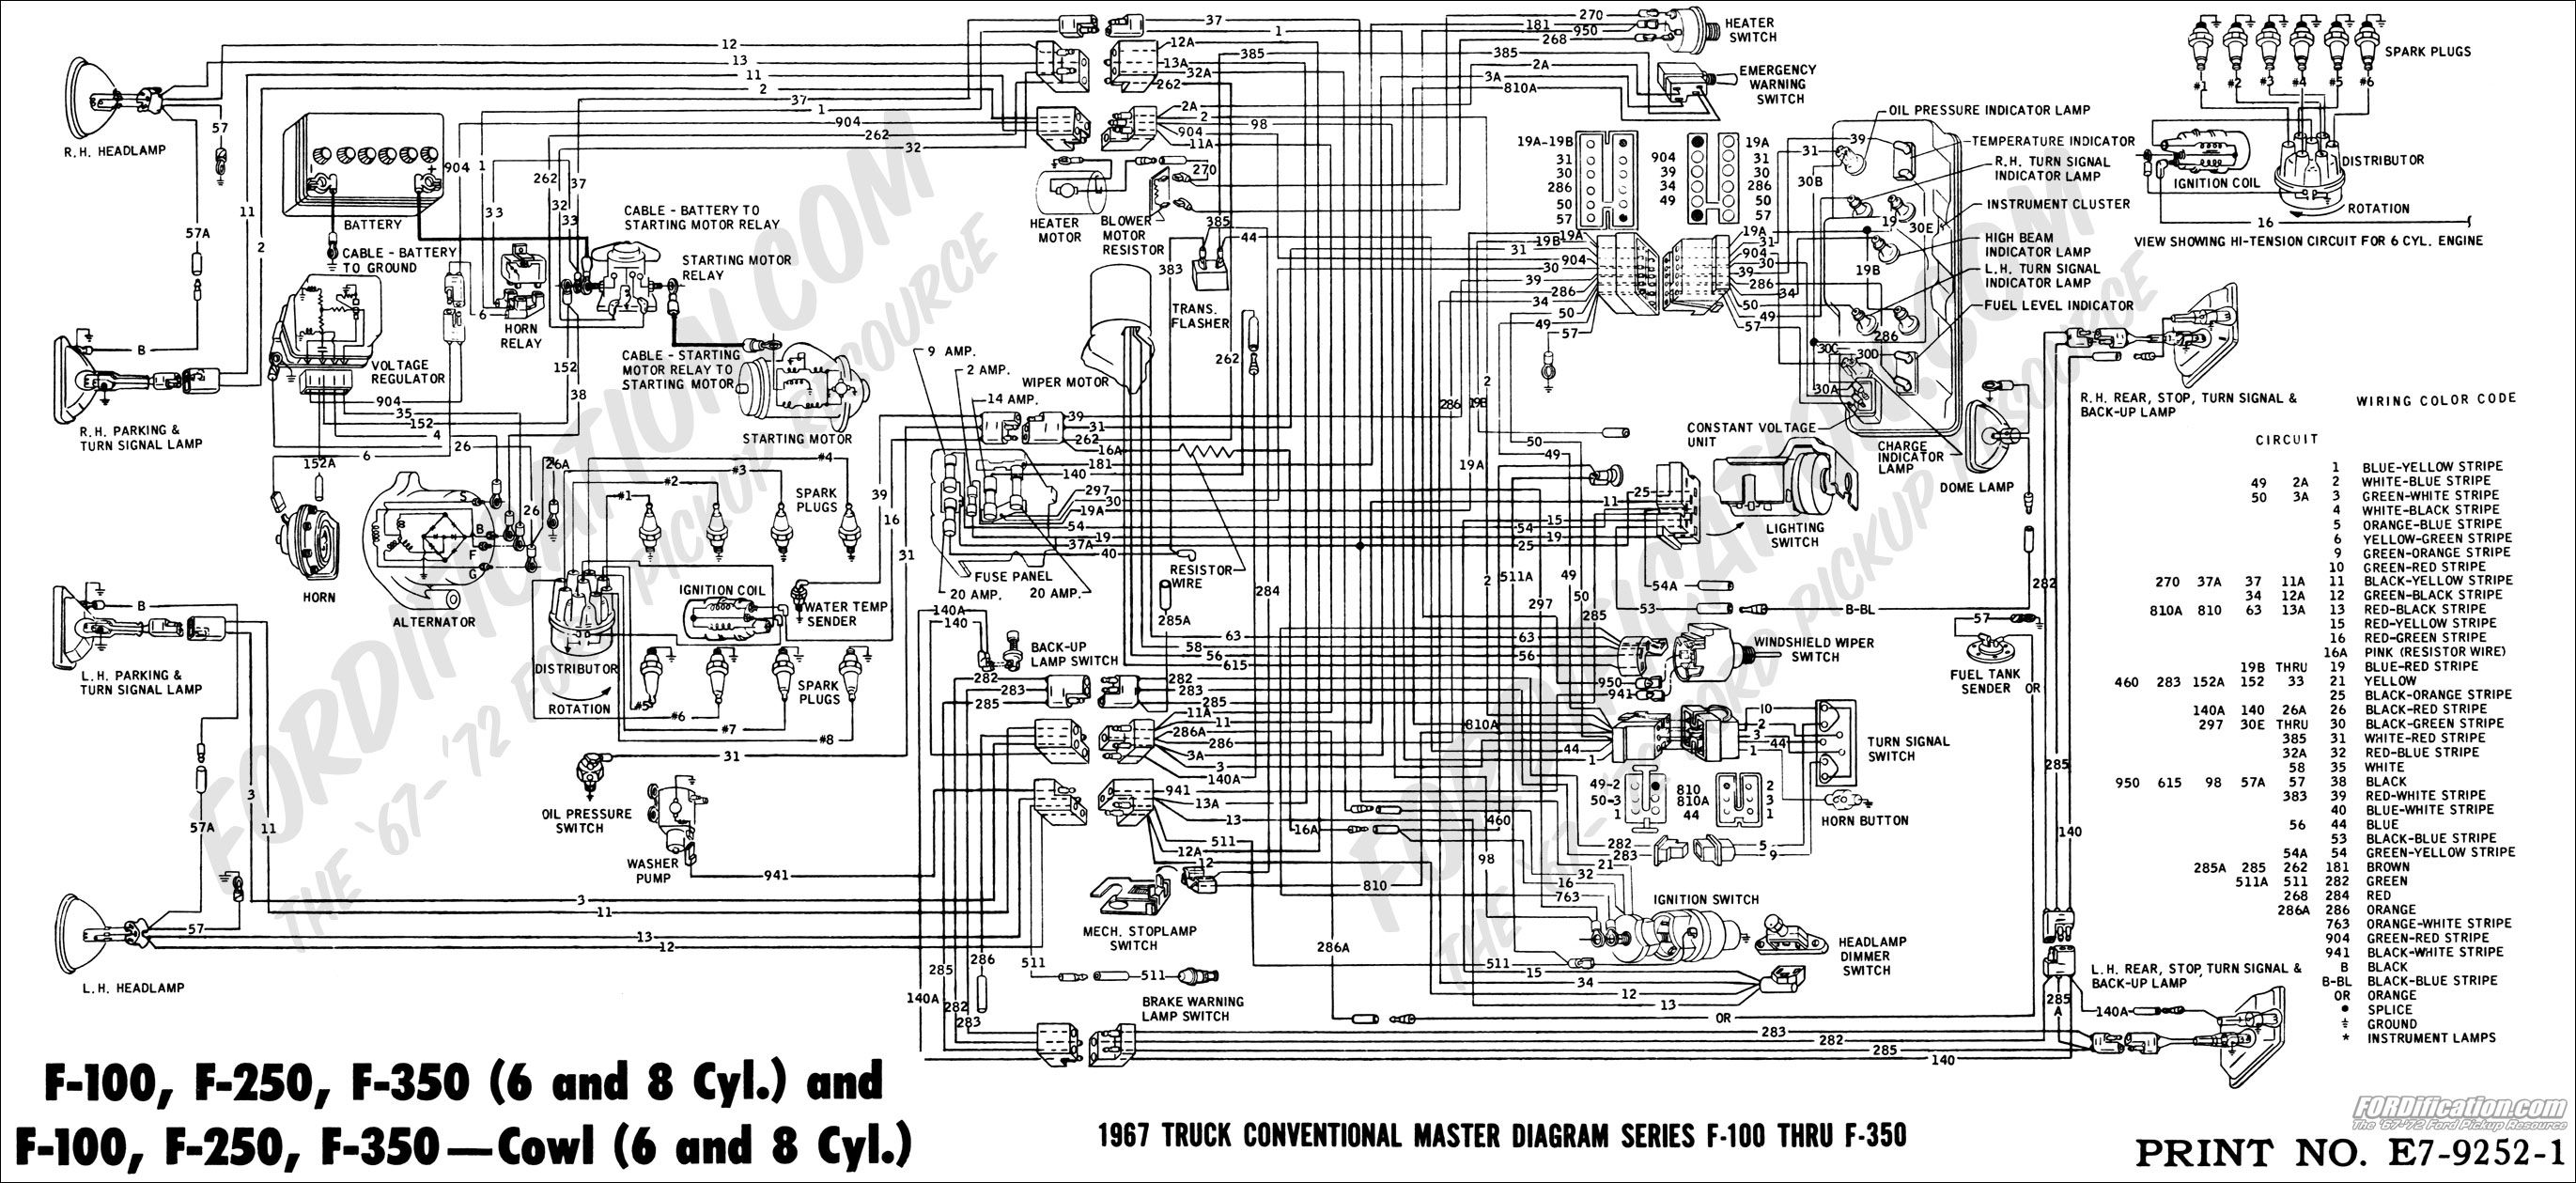 ford truck technical drawings and schematics section h wiring diagrams [ 2742 x 1259 Pixel ]